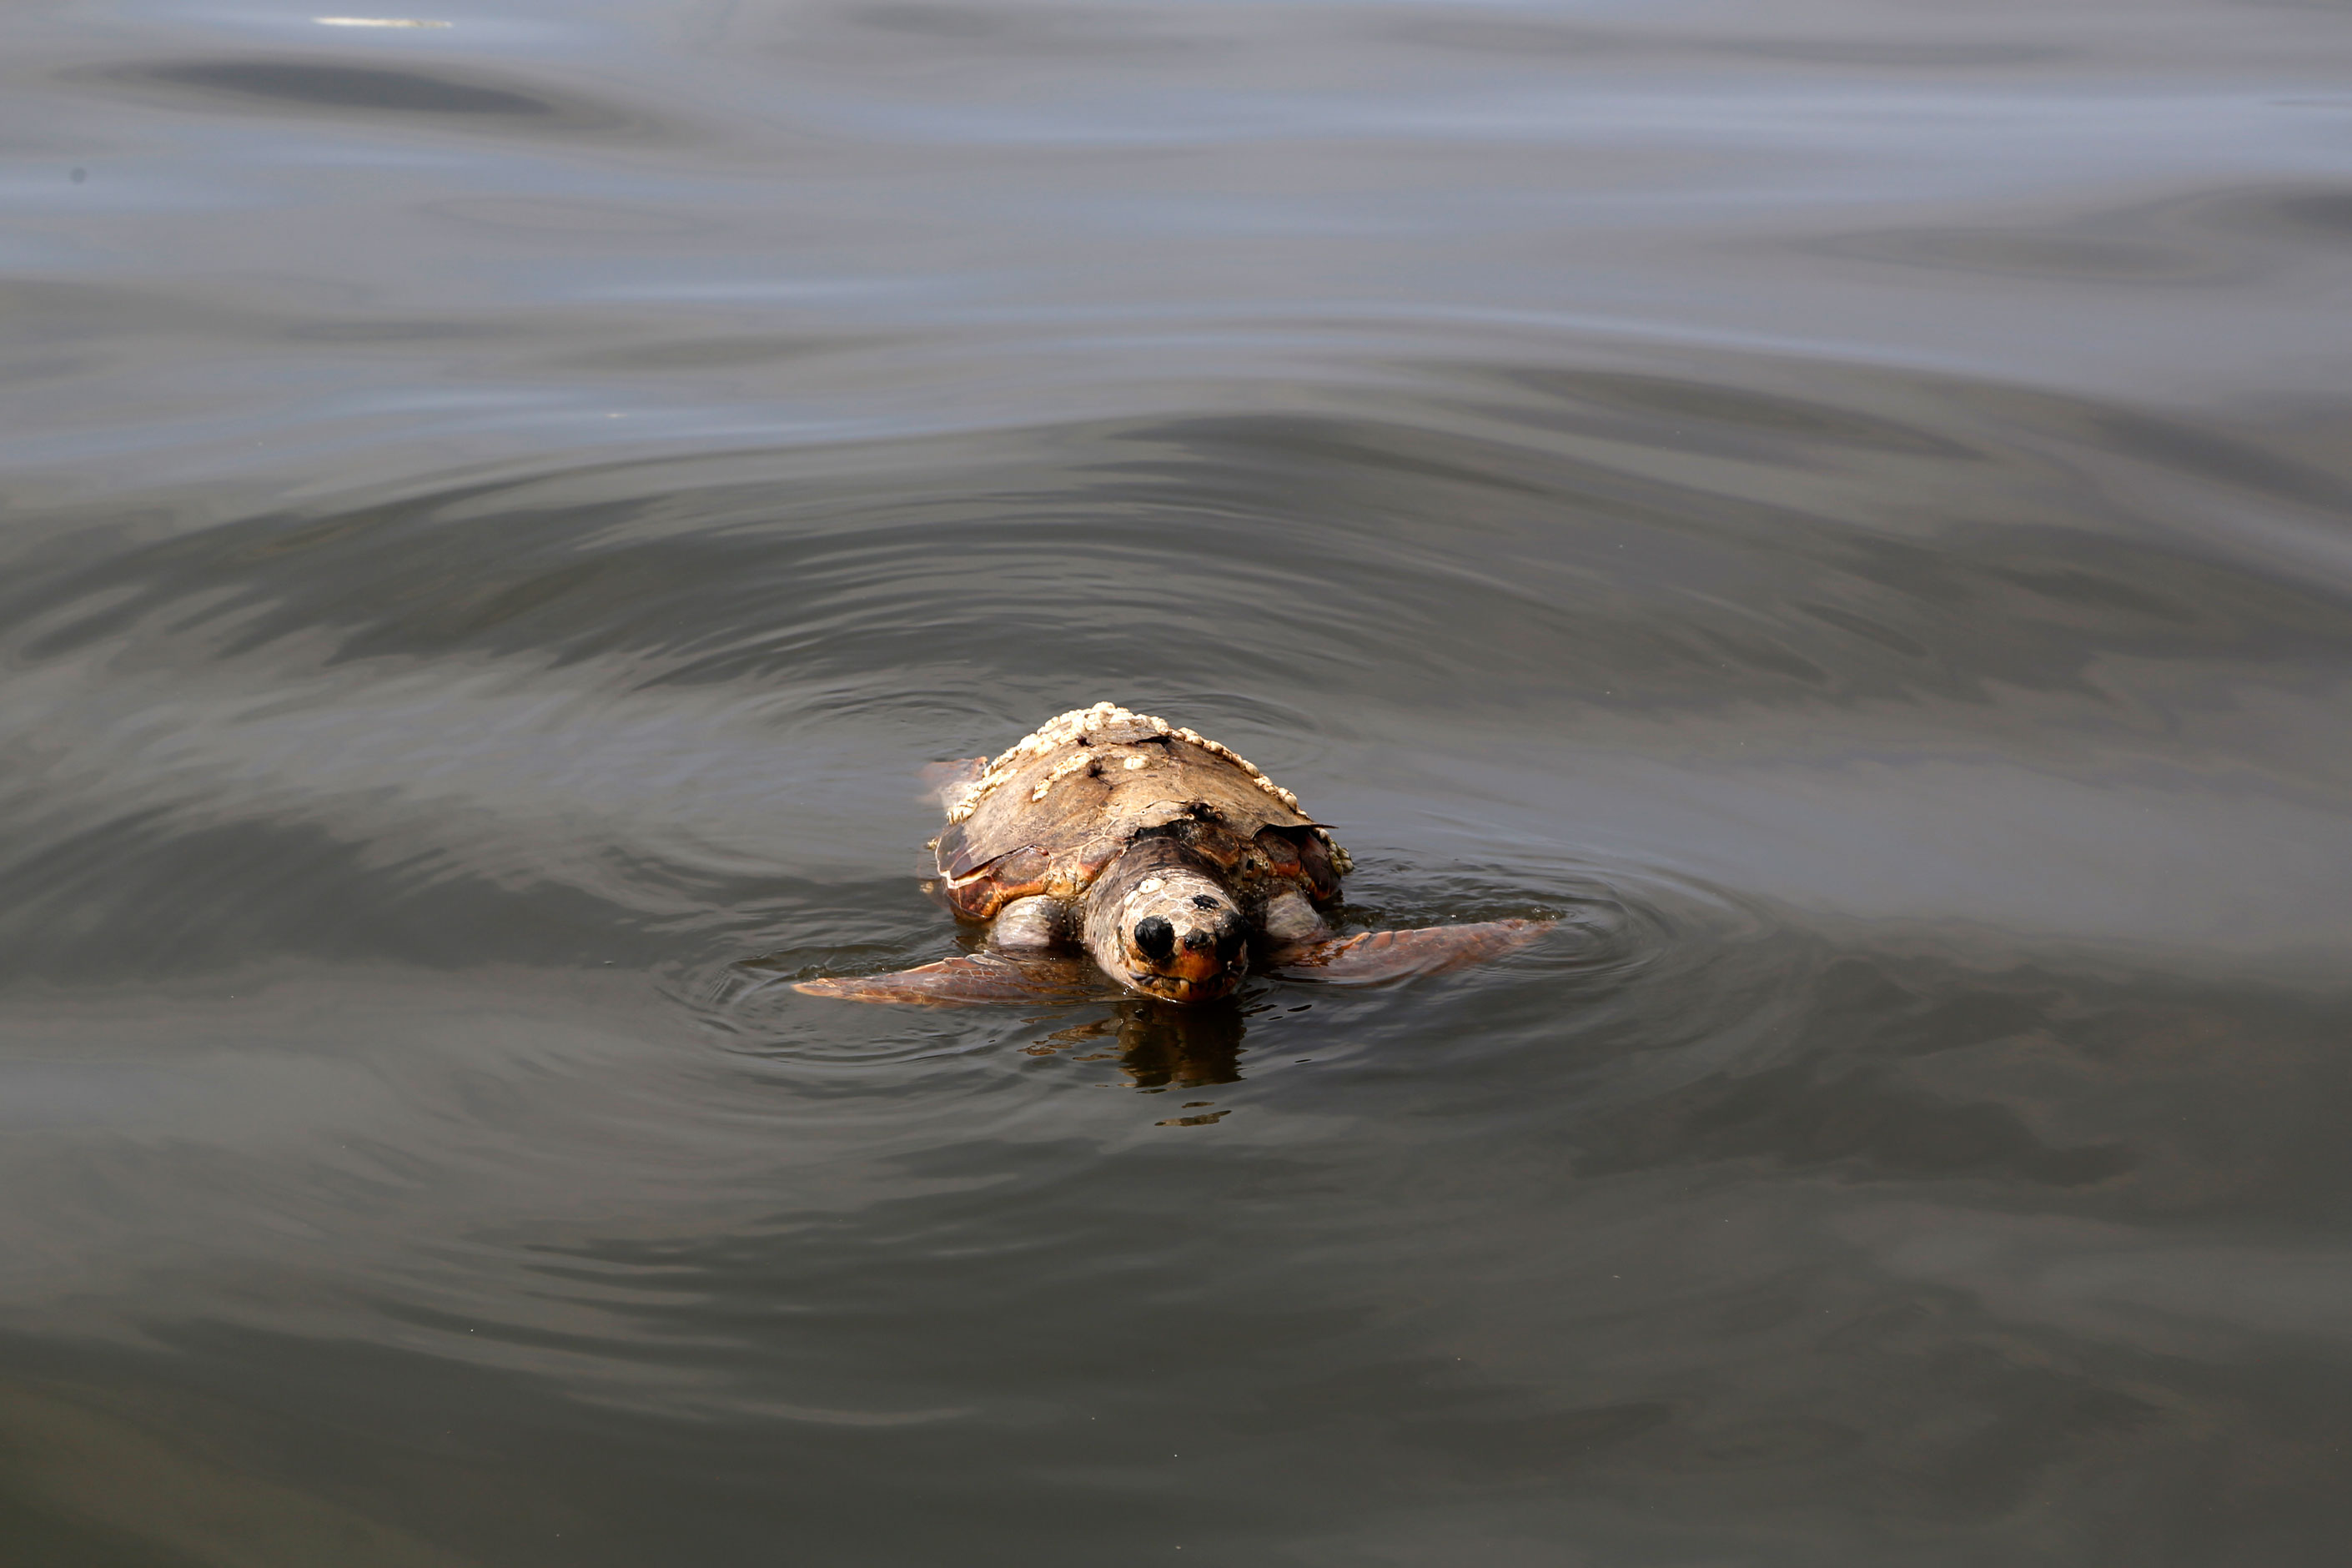 A dead sea turtle floating in the water near the Bourj Hammoud landfill and dumping site.